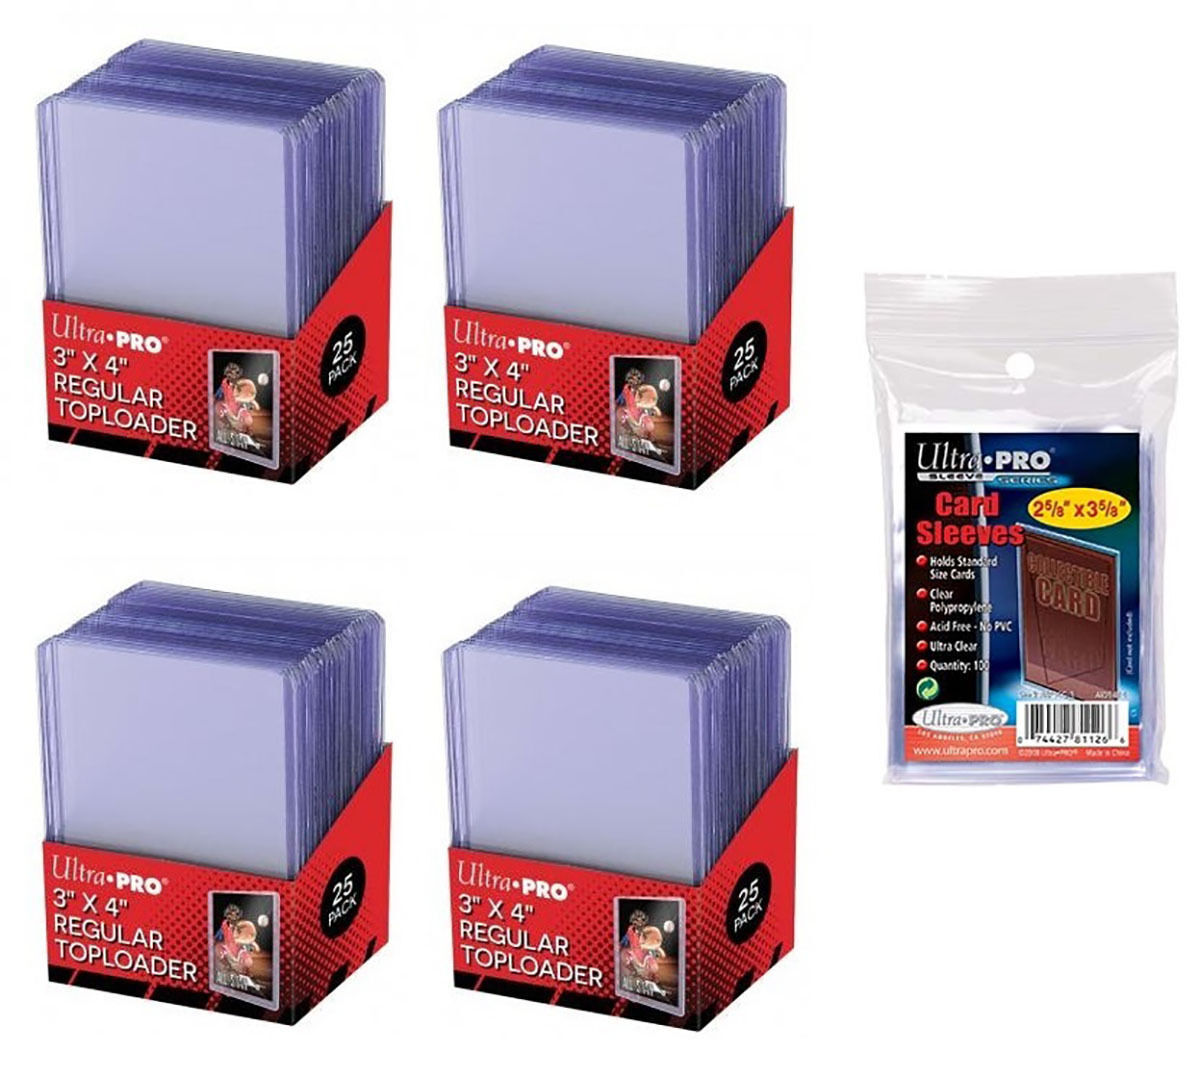 100 Ultra Pro Regular 3 x 4 Toploaders New top loaders + 100 soft sleeves